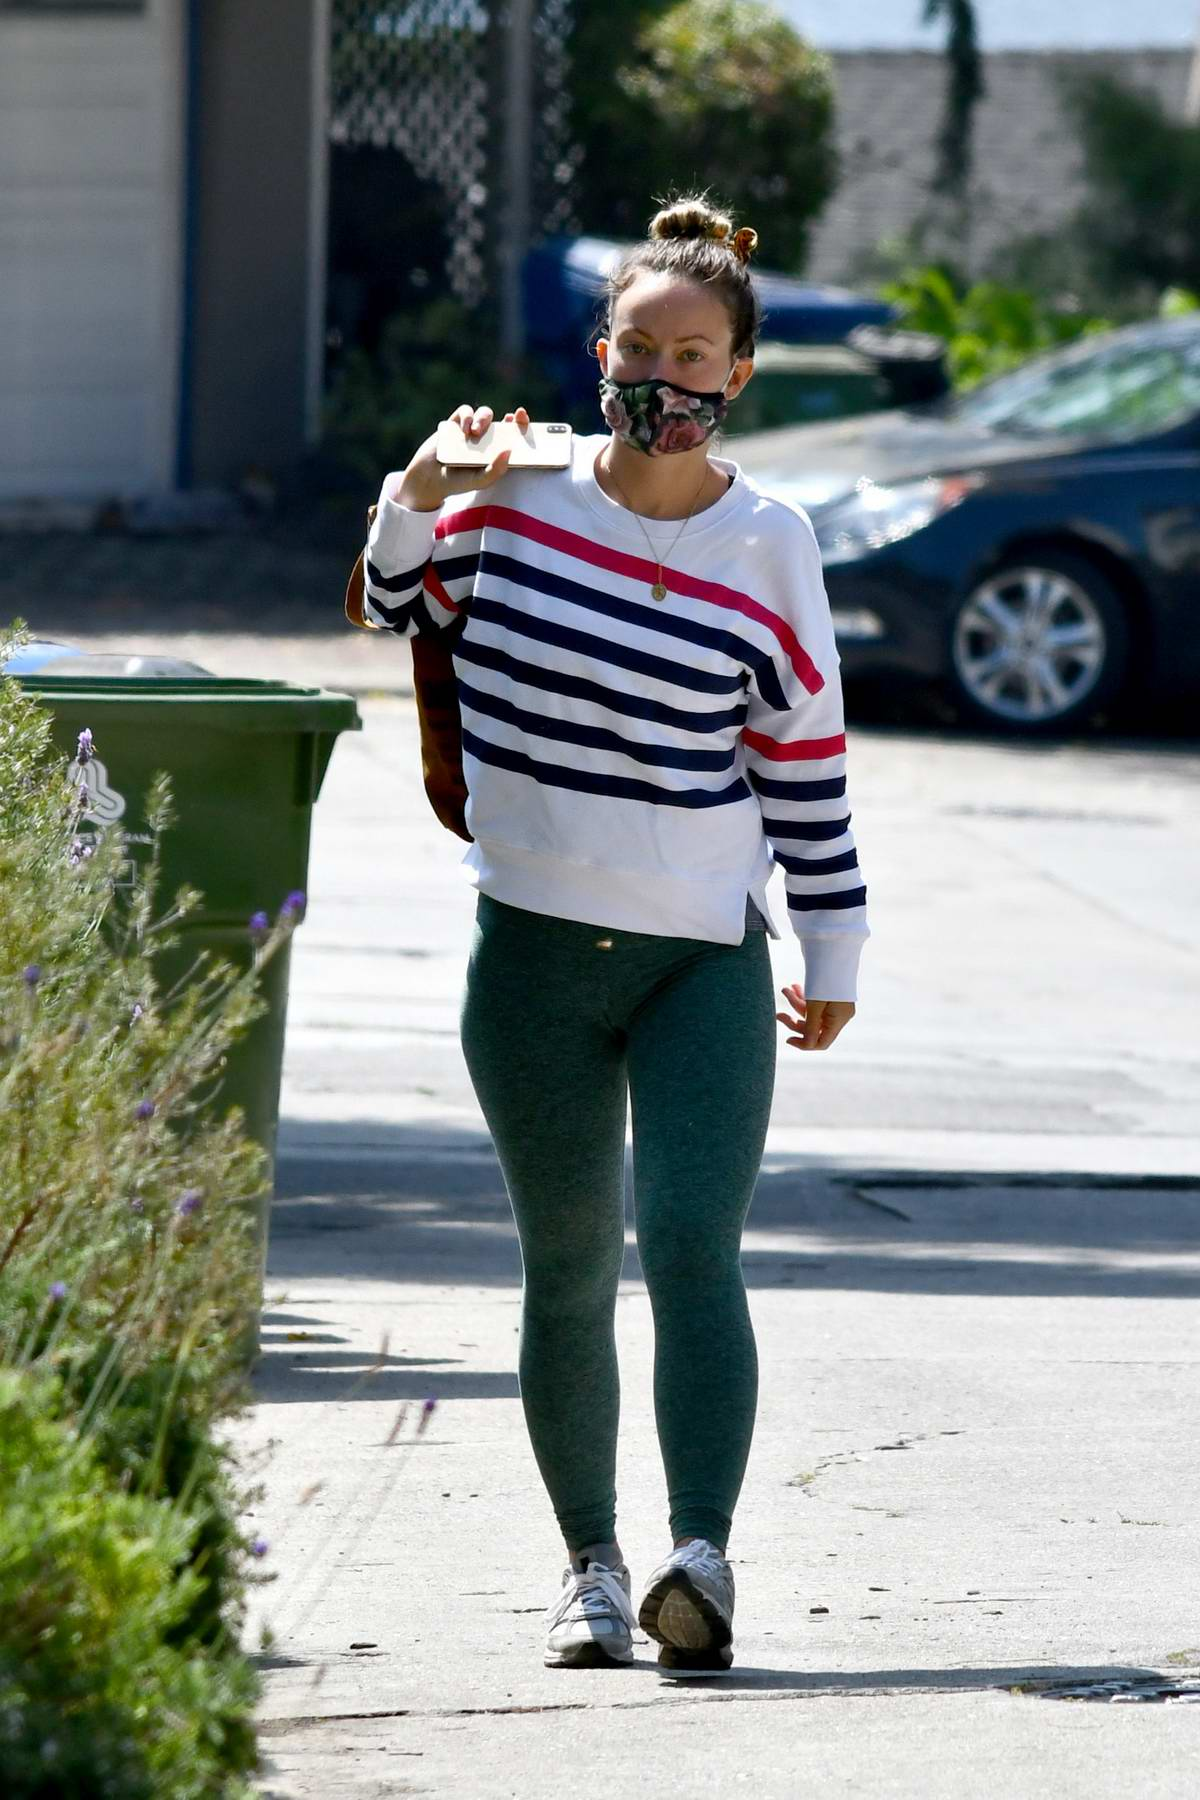 Olivia Wilde sports green leggings with a striped sweatshirt as she steps out in Los Angeles